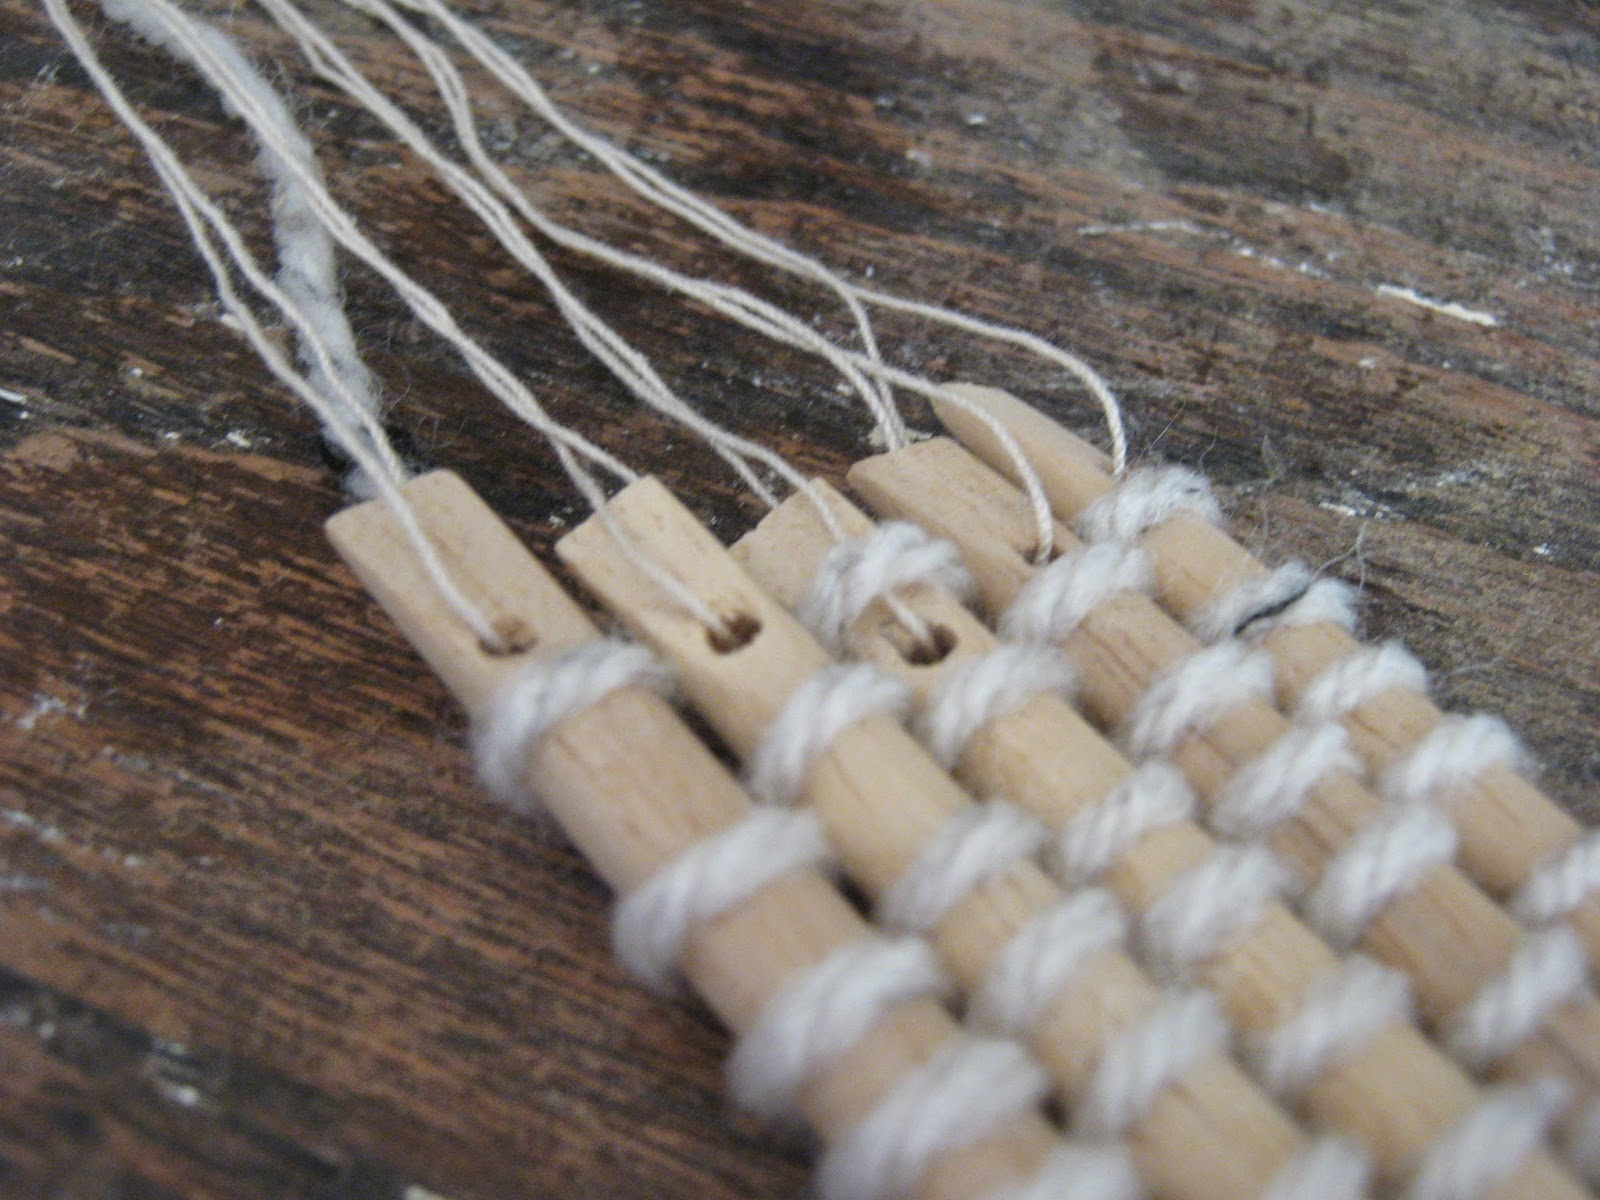 Weaving Sticks